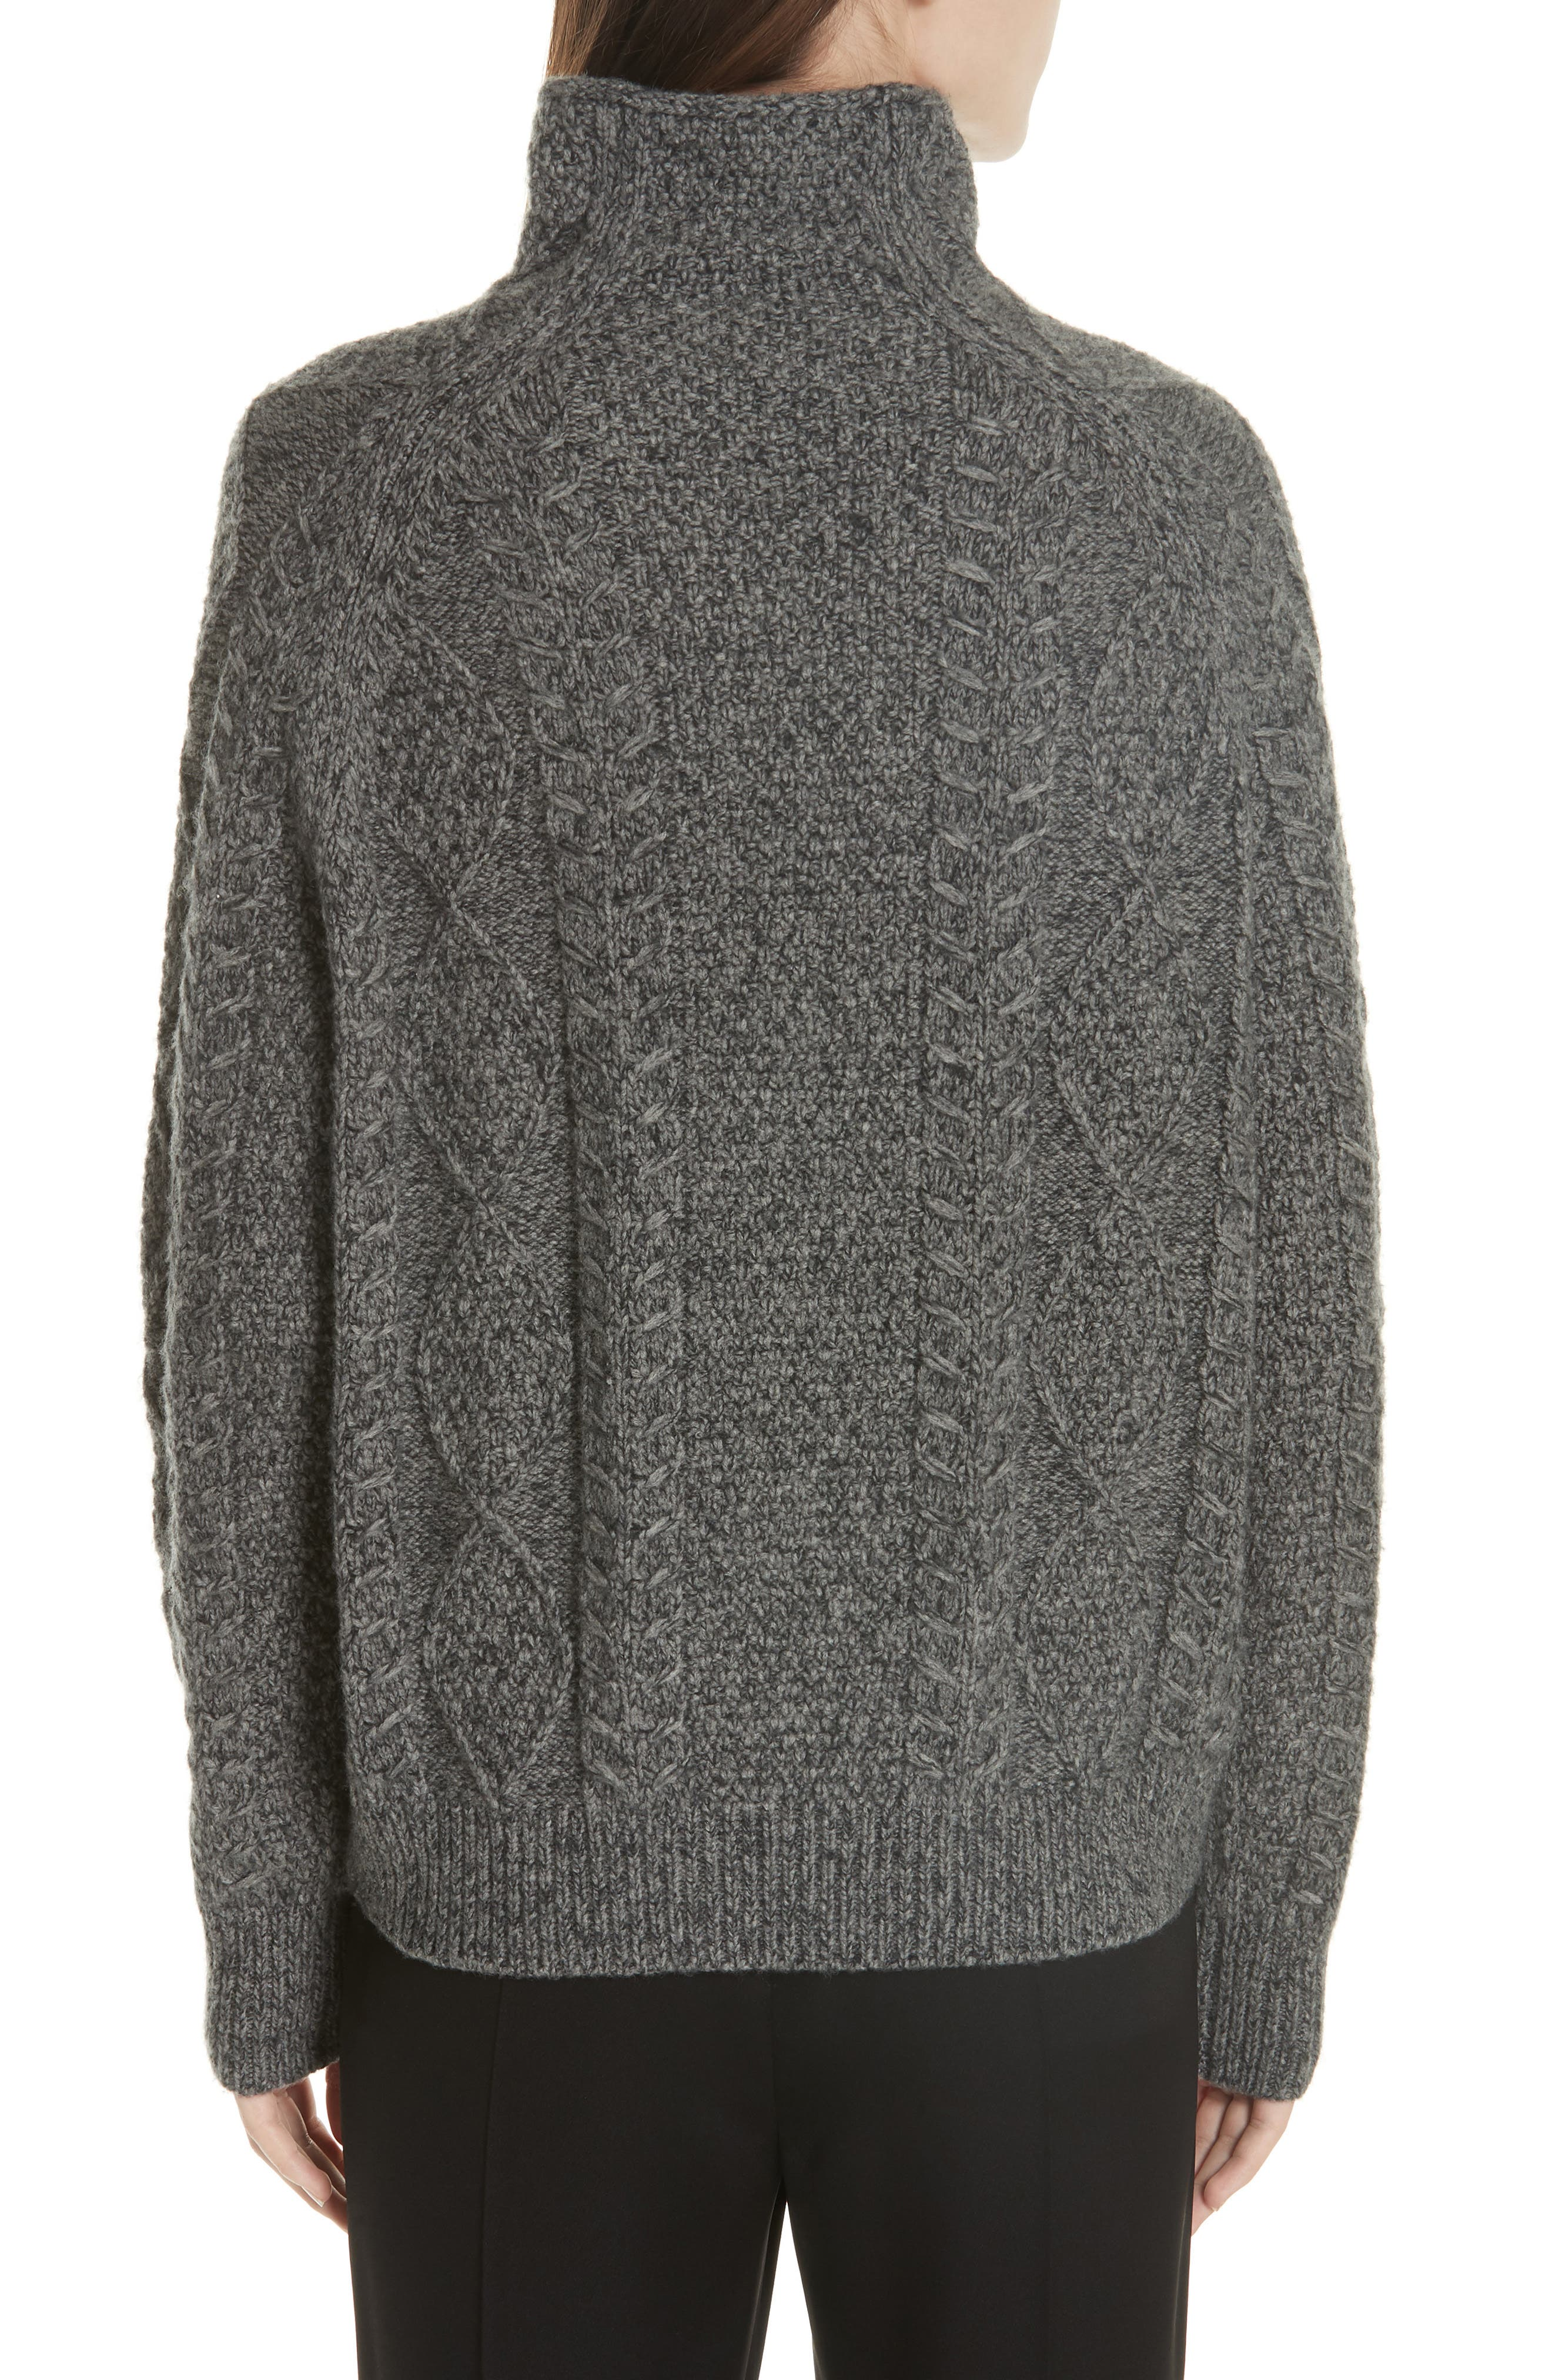 Cable Turtleneck Sweater,                             Alternate thumbnail 2, color,                             HEATHER STONE/ HEATHER CARBON